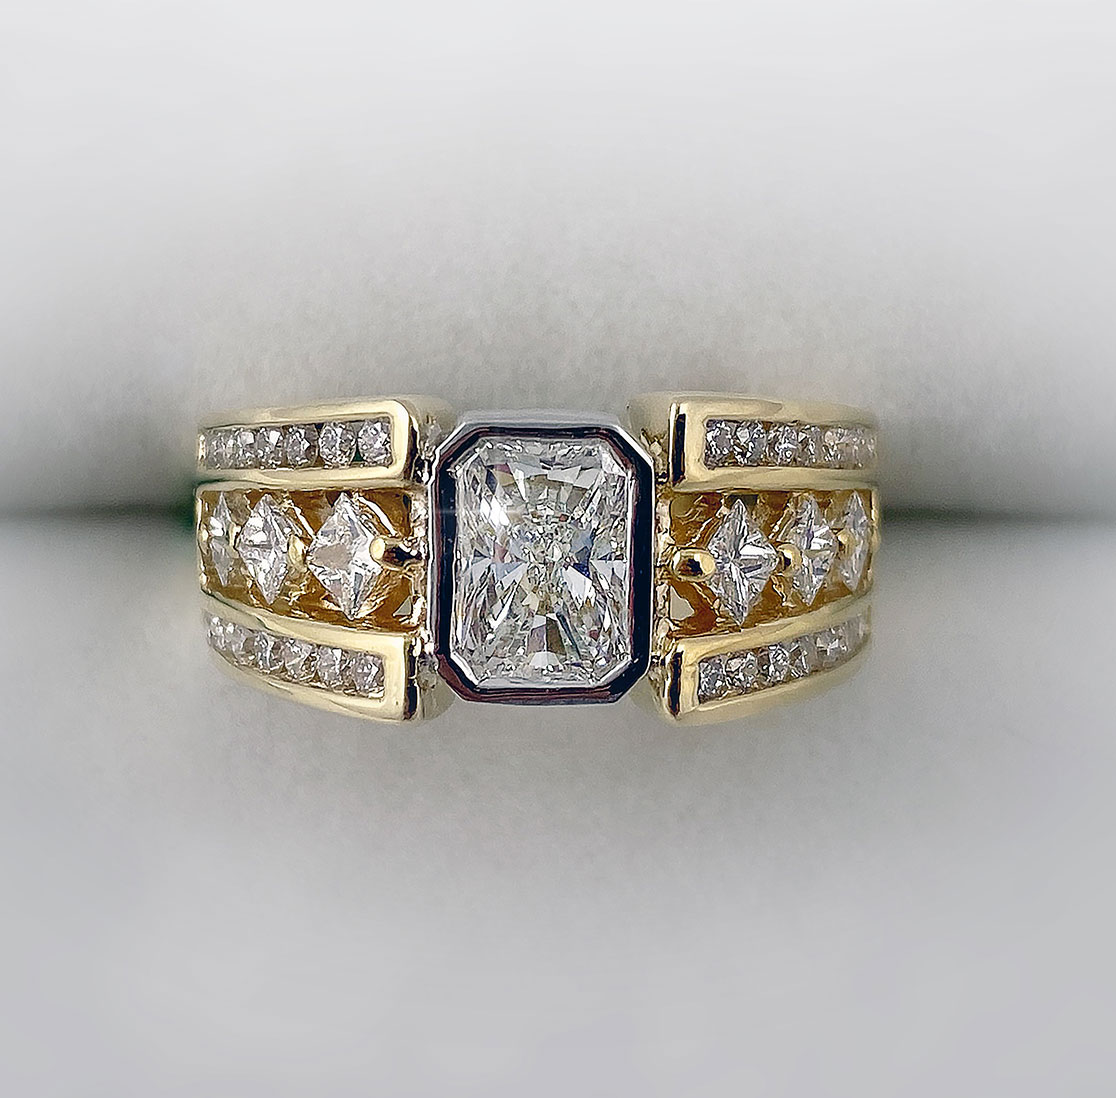 14k yellow gold and platinum bezel set radiant cut diamond, 1.00ct. Gia certificate